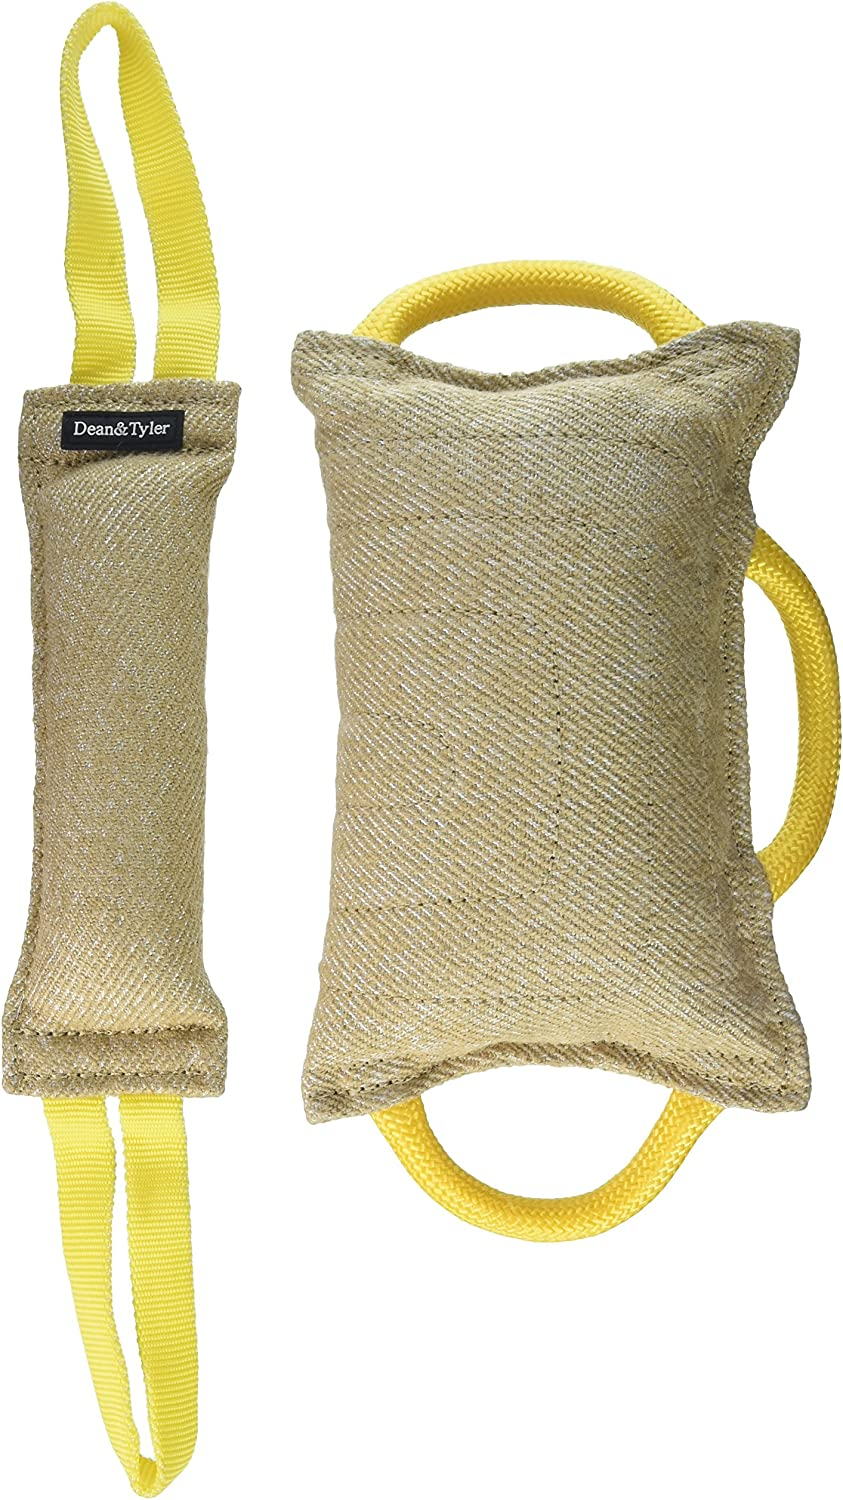 Dean and Tyler Tug Bundle of 1 Bite Pillow and 1 Medium Tug, Jute, Tug Size  12Inch by 4Inch